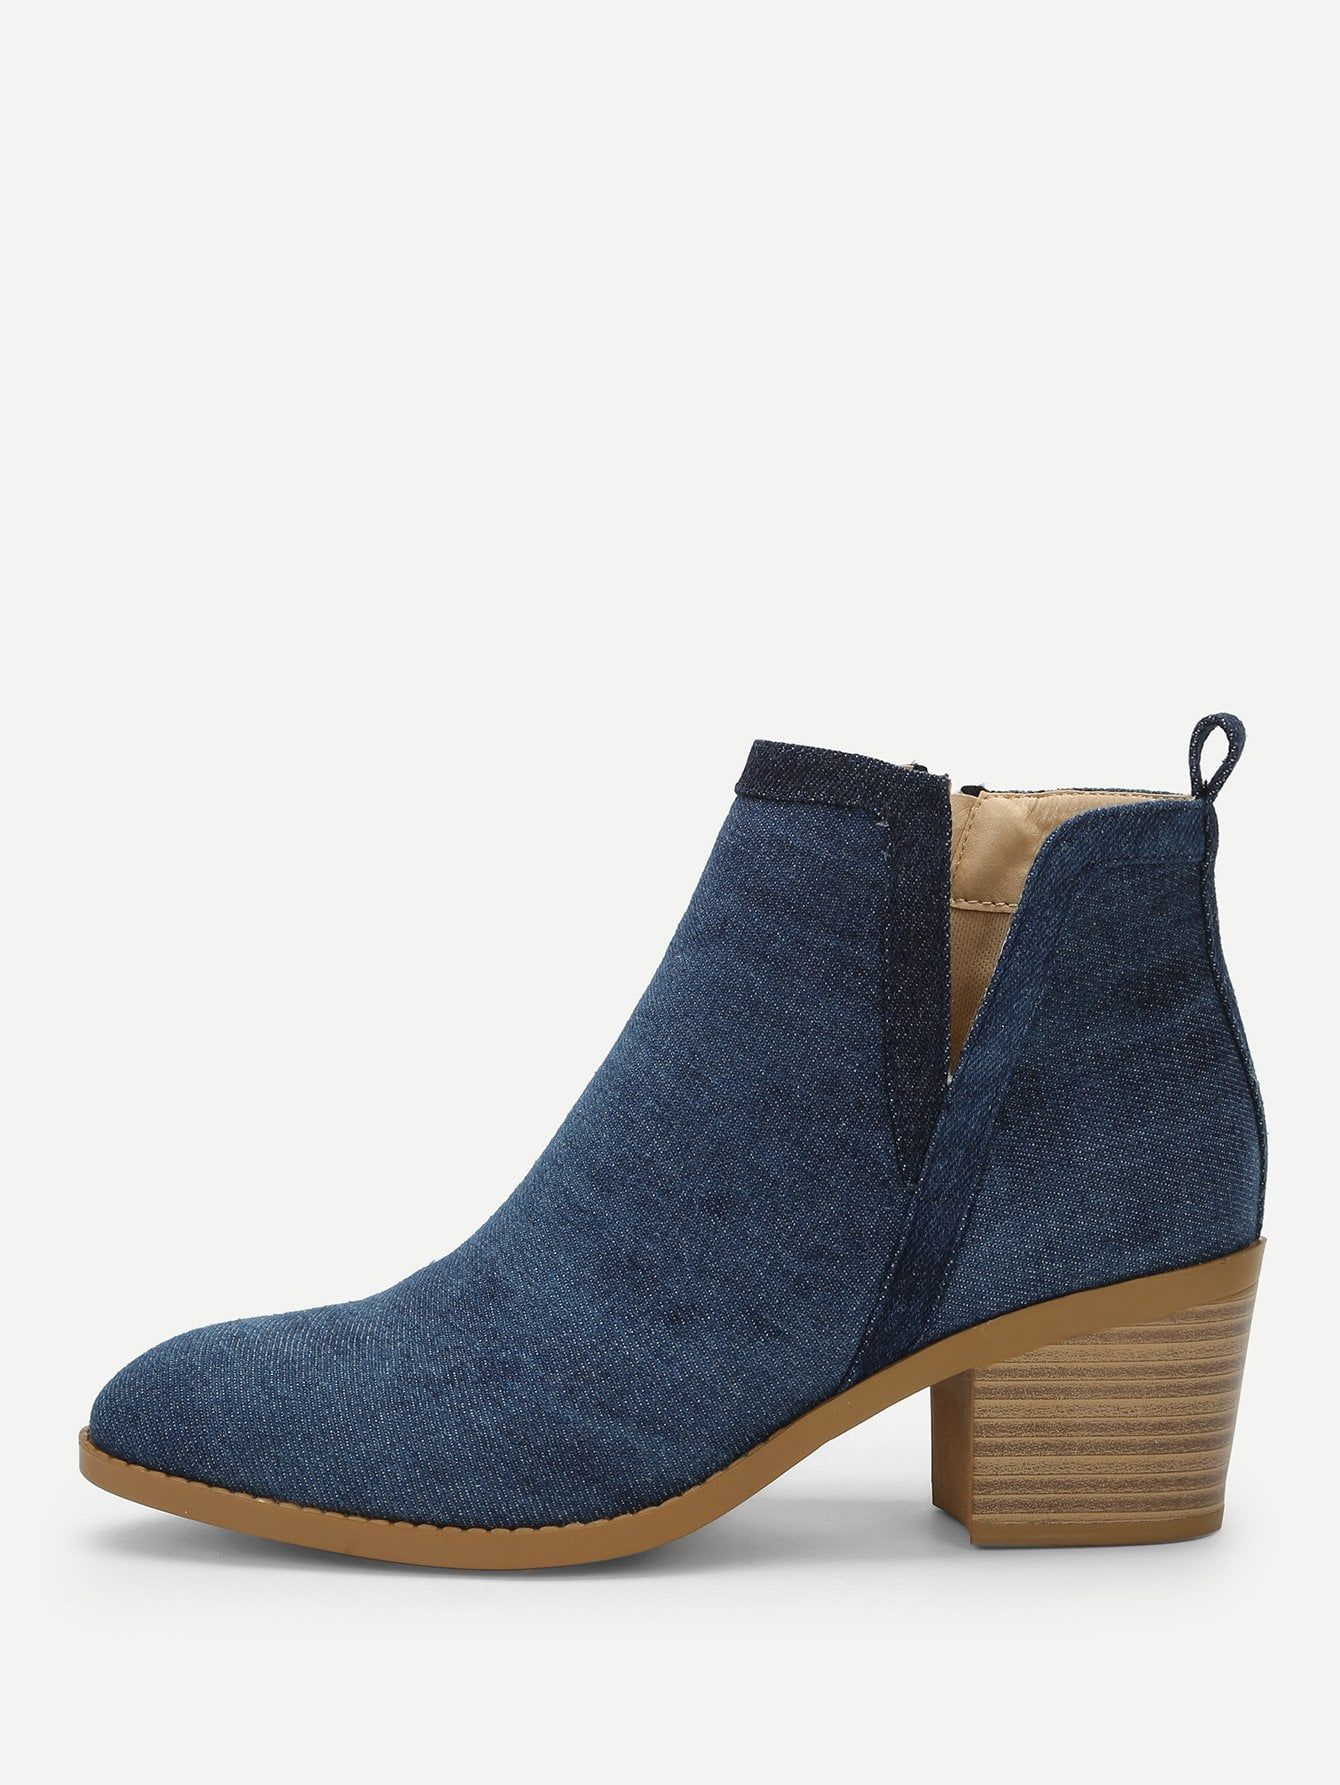 c1407e1720 Casual Point Toe Plain Ankle Side zipper Blue High Heel Chunky Plain Denim Chunky  Heeled Ankle Boots